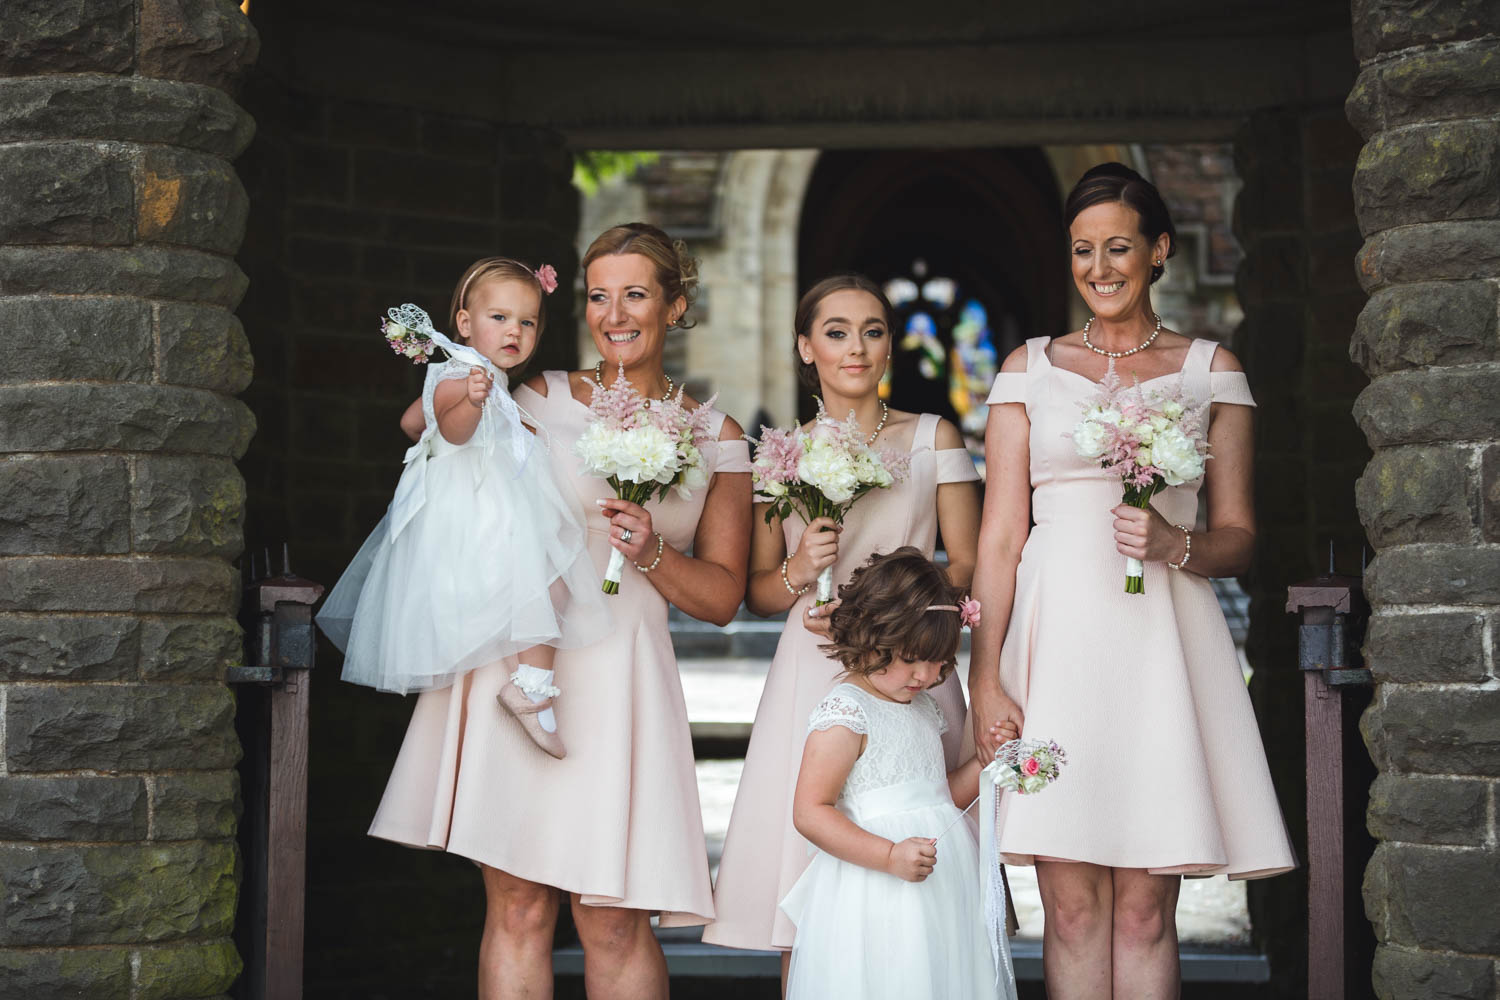 St Martins church Caerphilly wedding photographer